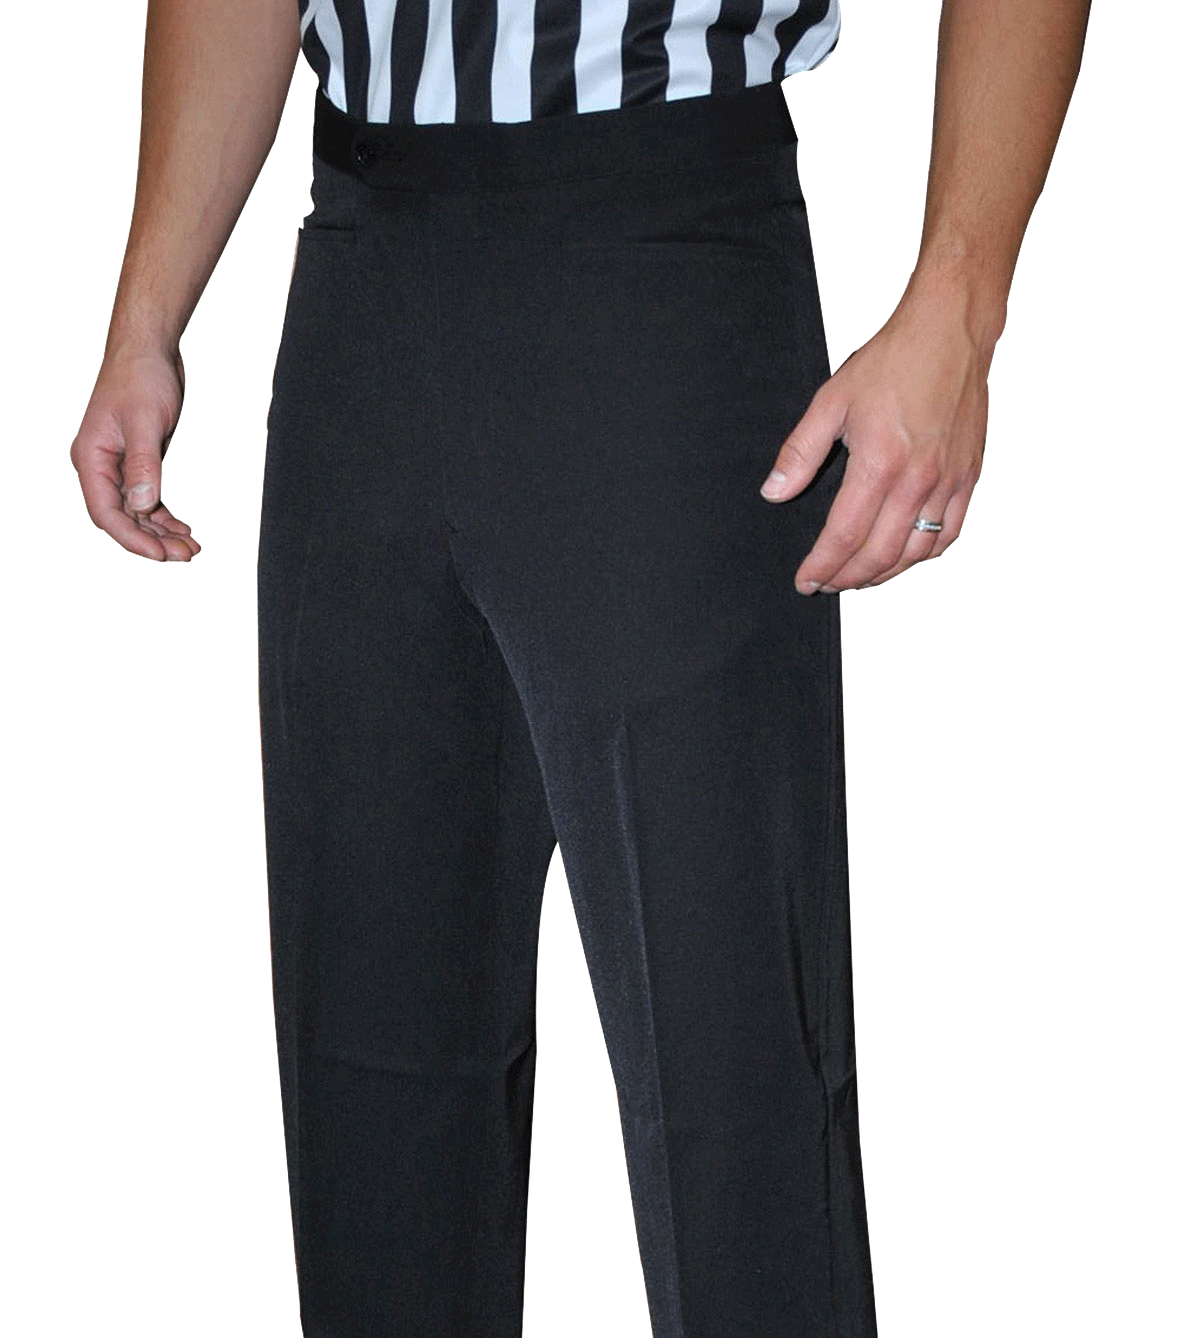 Basketball Officials Pants